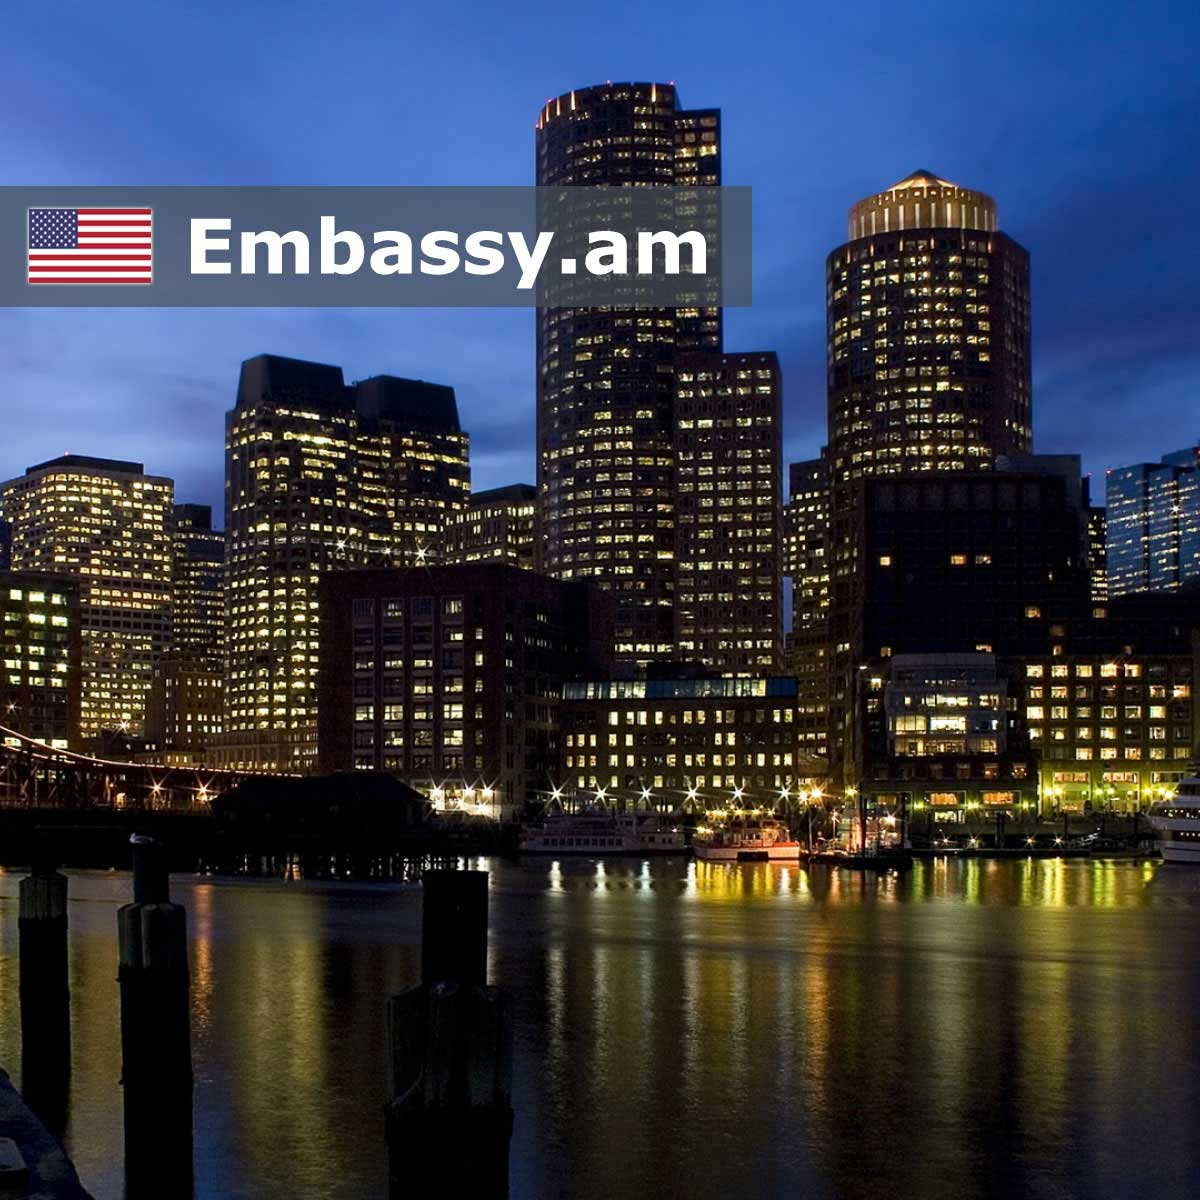 Los Angeles - Hotels in United States of America - Embassy.am